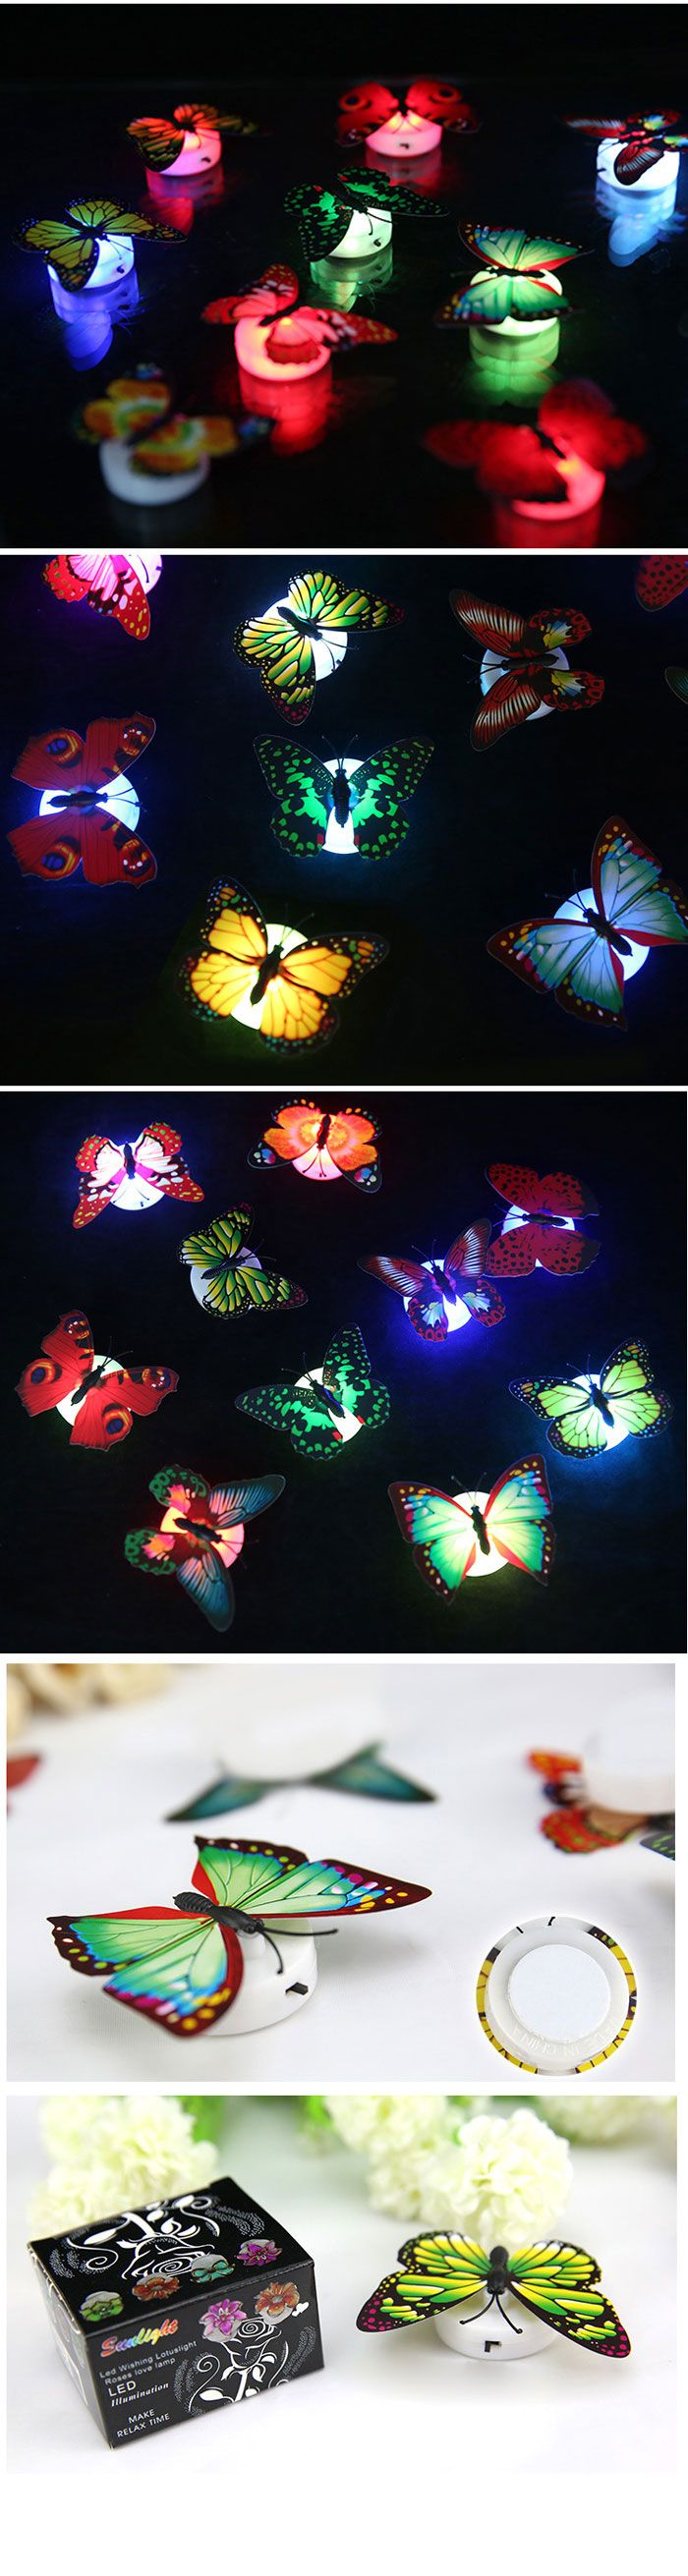 1pcs 3D Color Changing LED Butterfly Light Wall Night Lights-1.80 and Free Shipping| GearBest.com